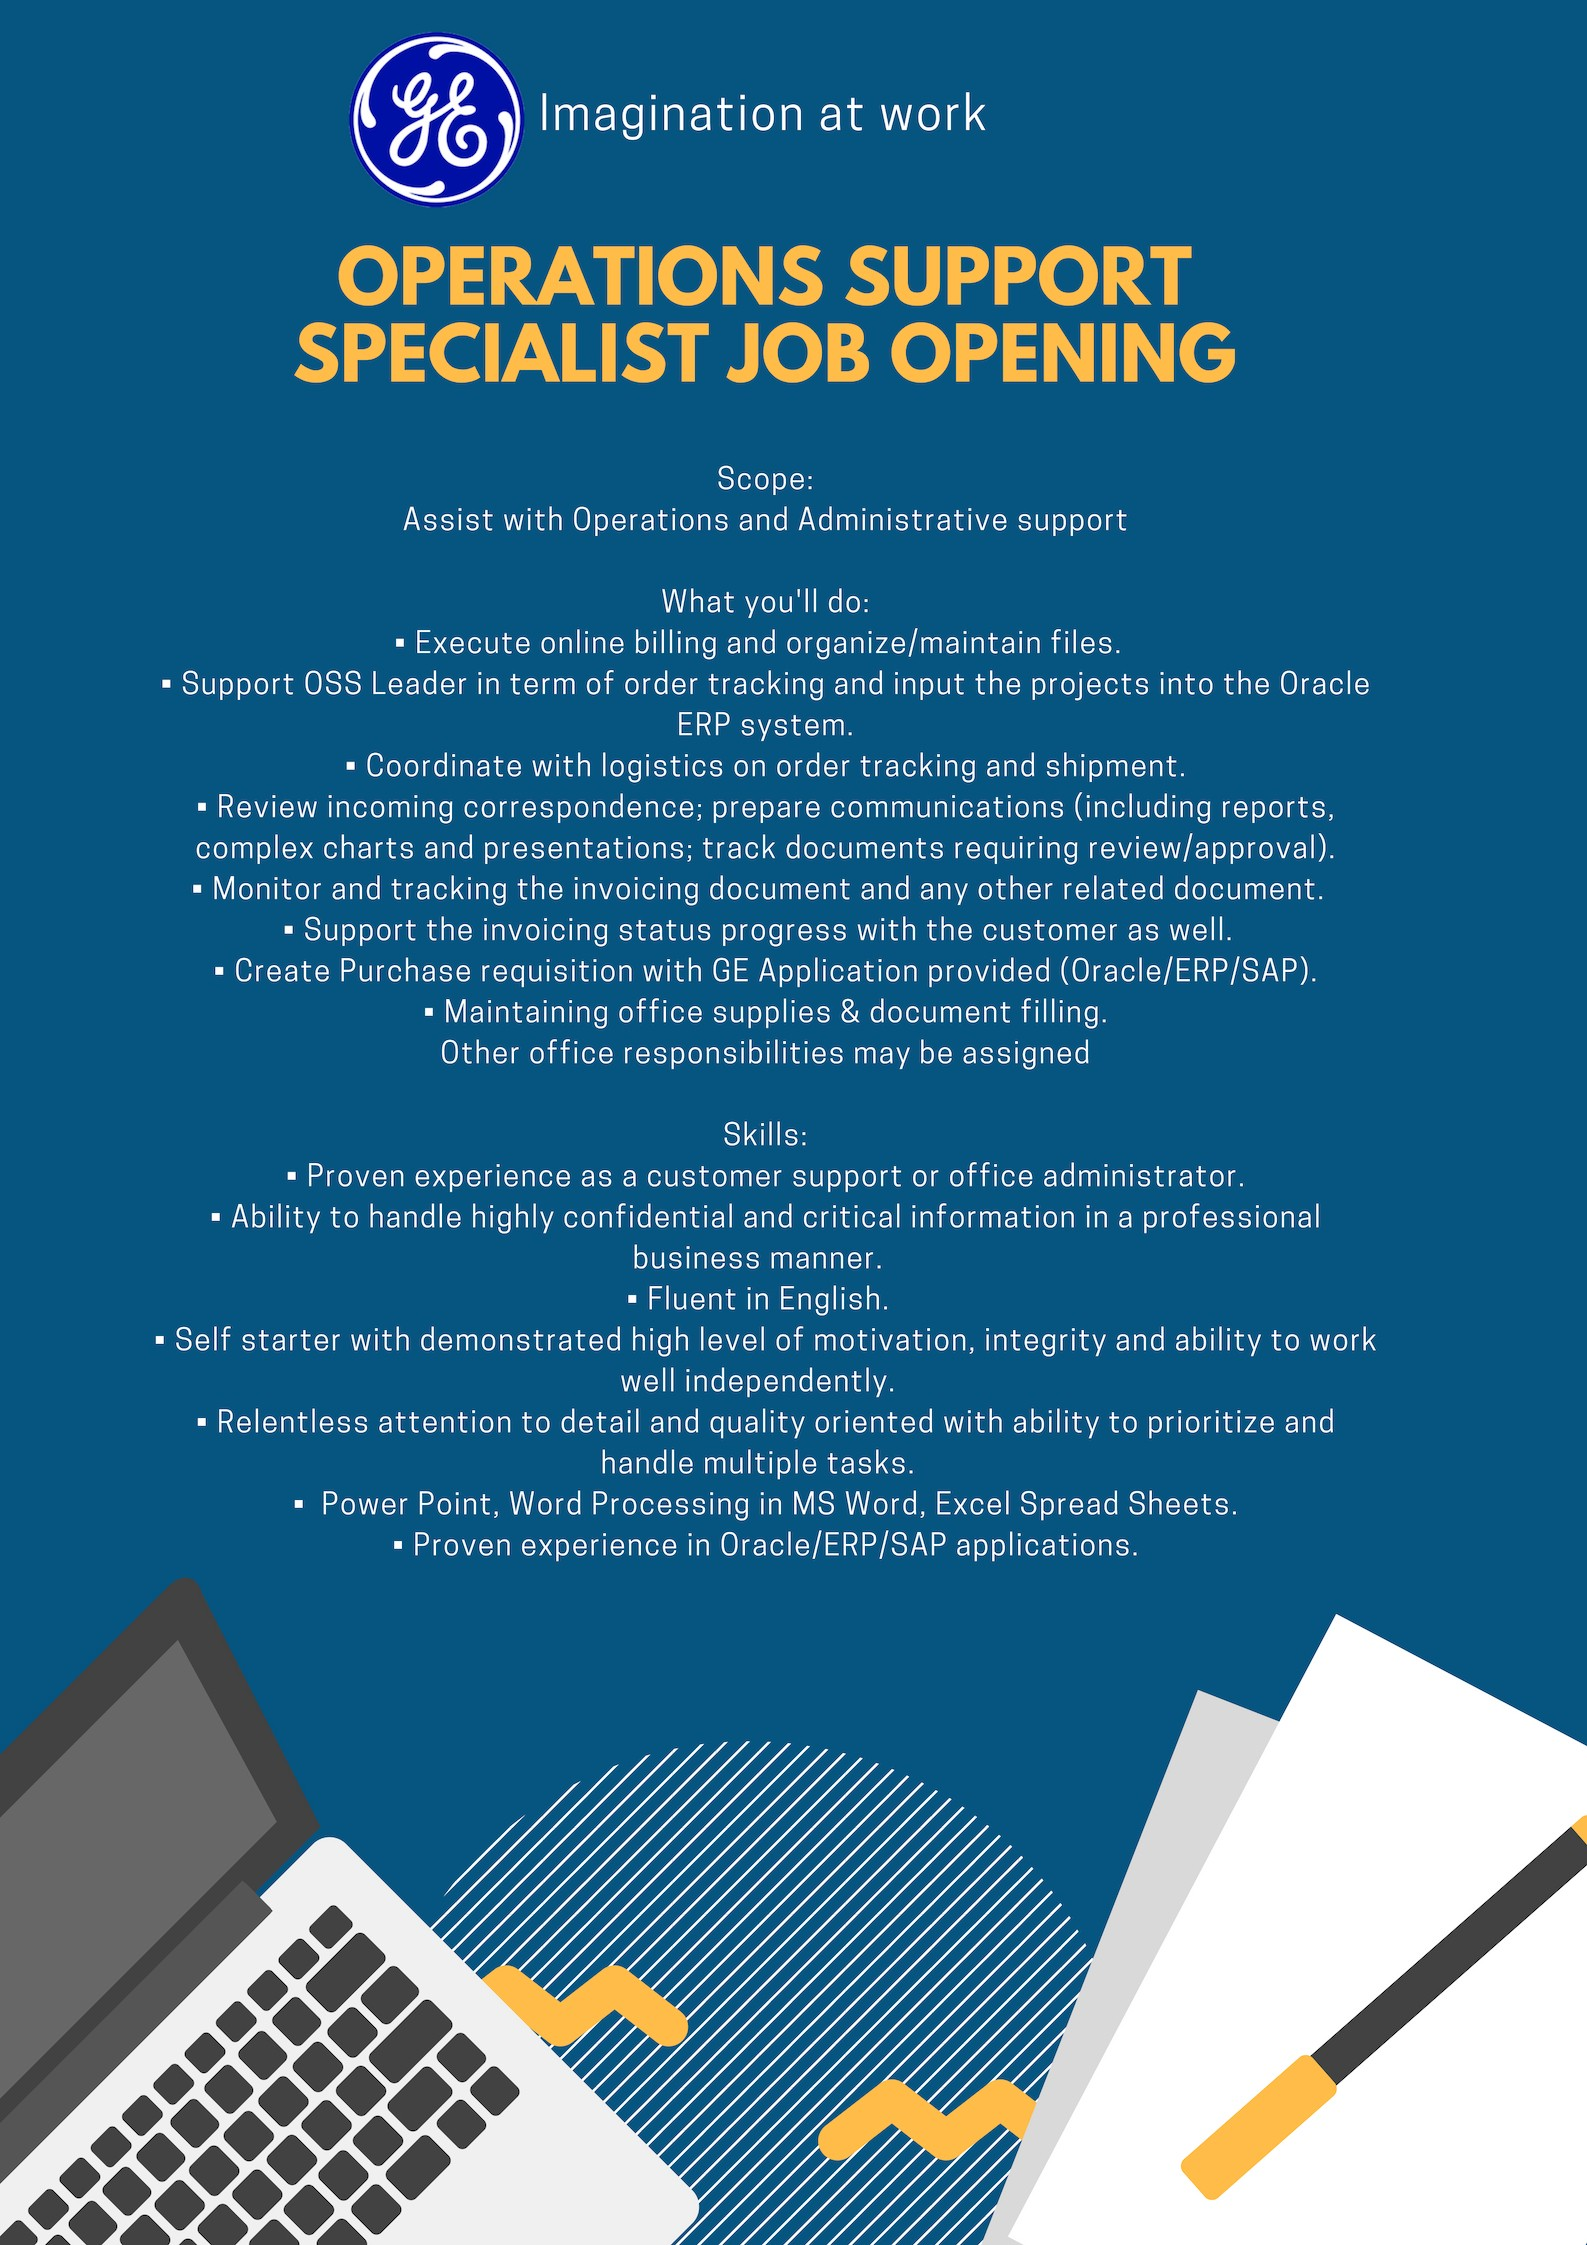 Operations support specialist job opening